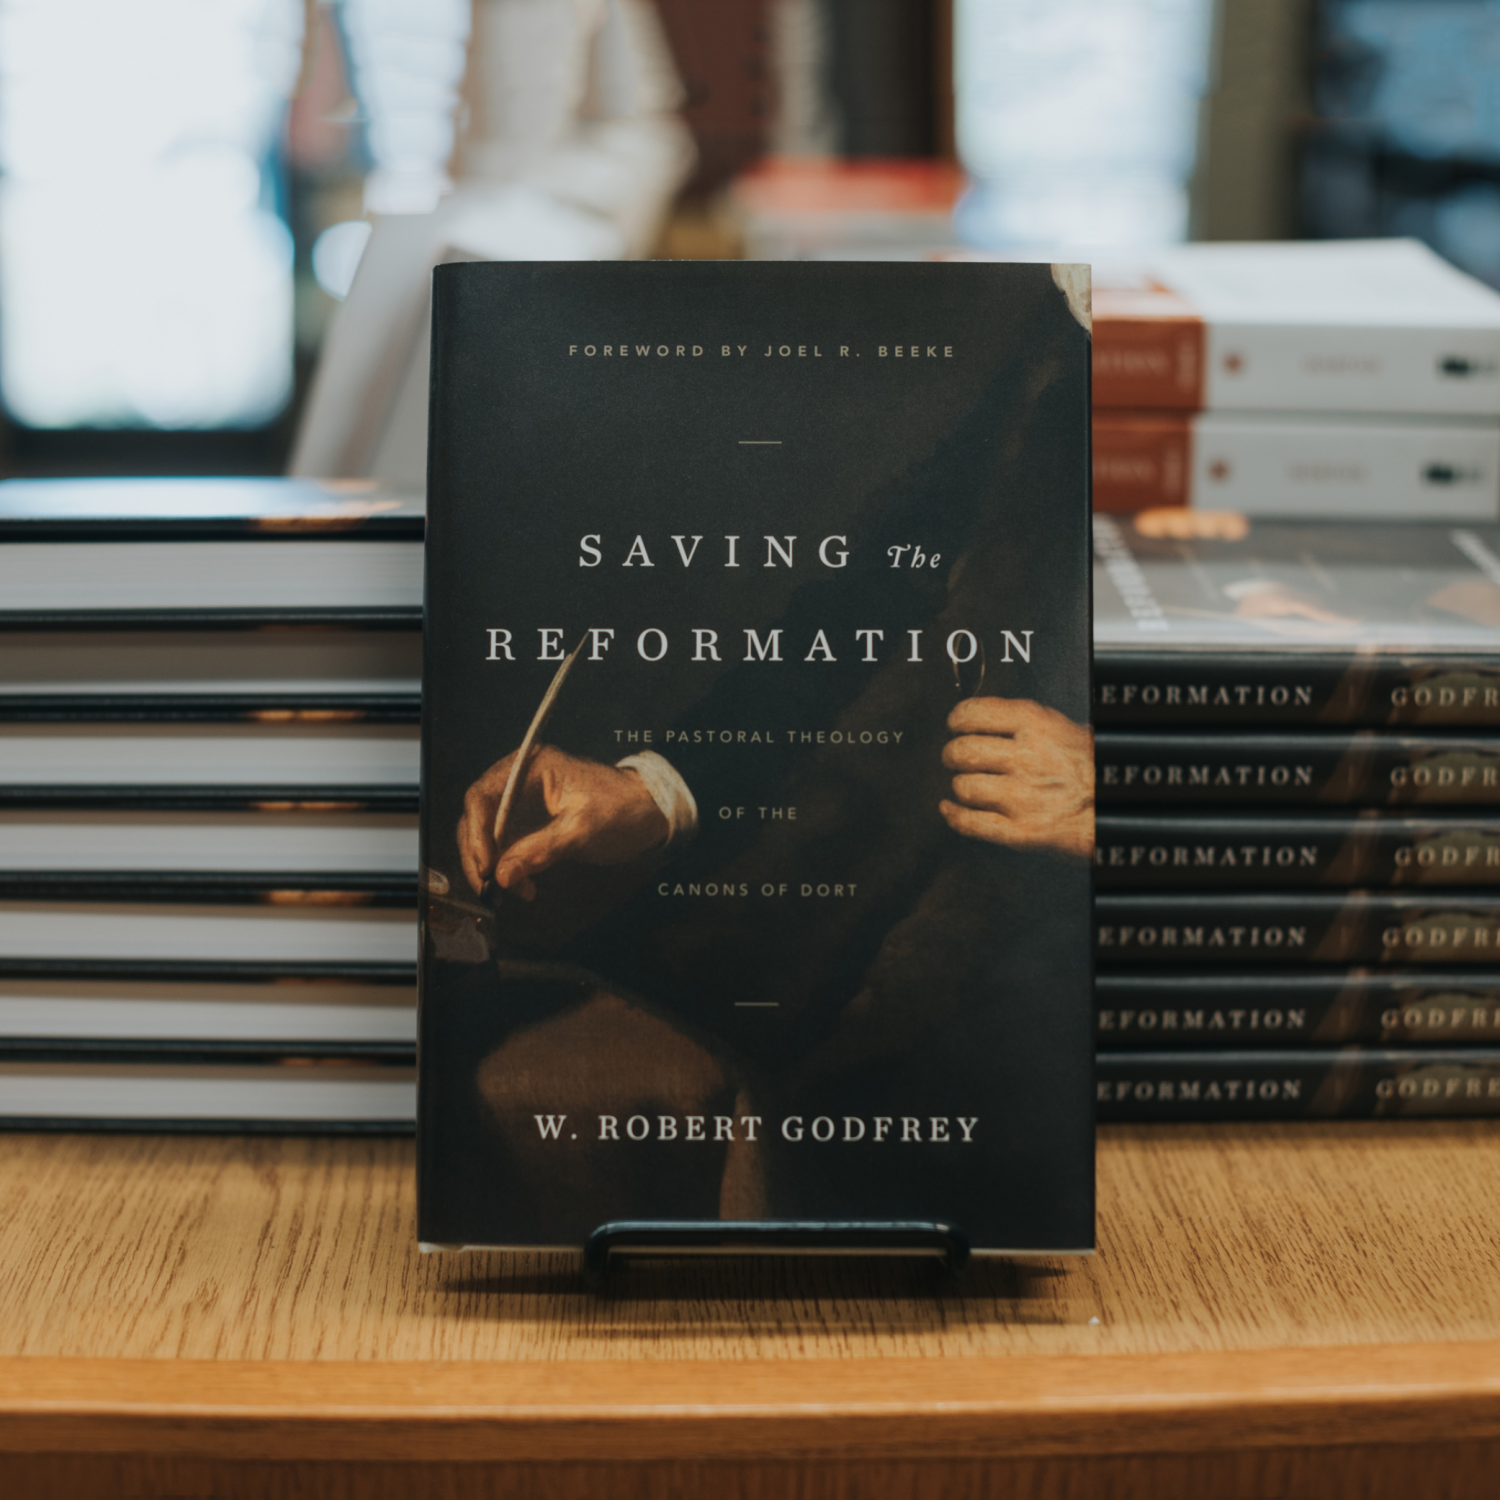 Saving the Reformation book by Dr. W. Robert Godfrey